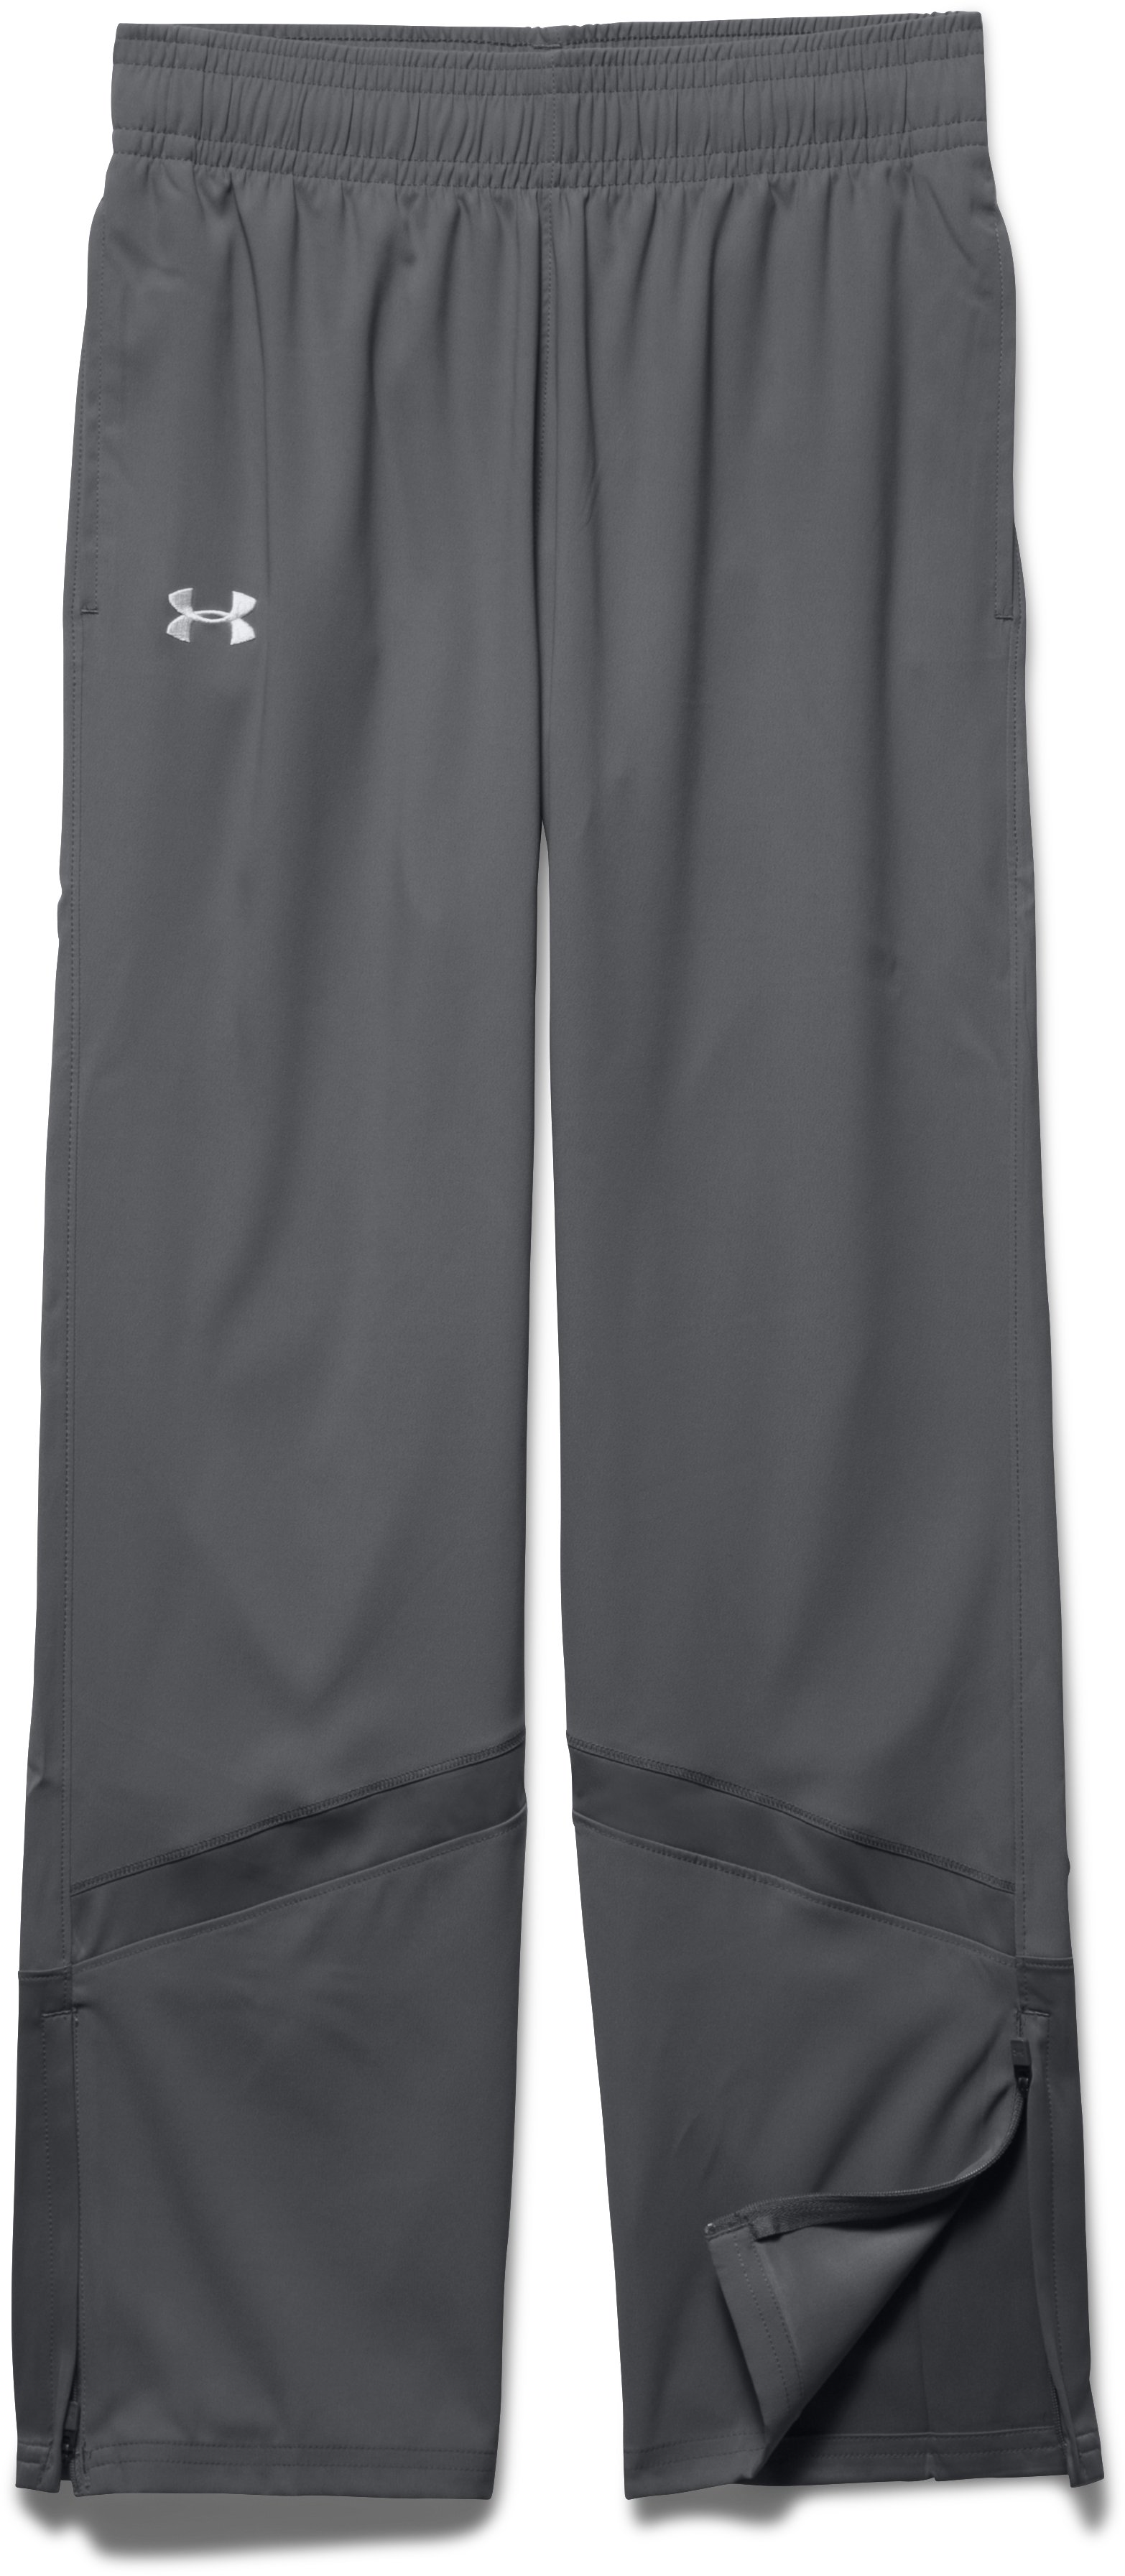 Girls' UA Pregame Woven Warm-Up Pants, Graphite